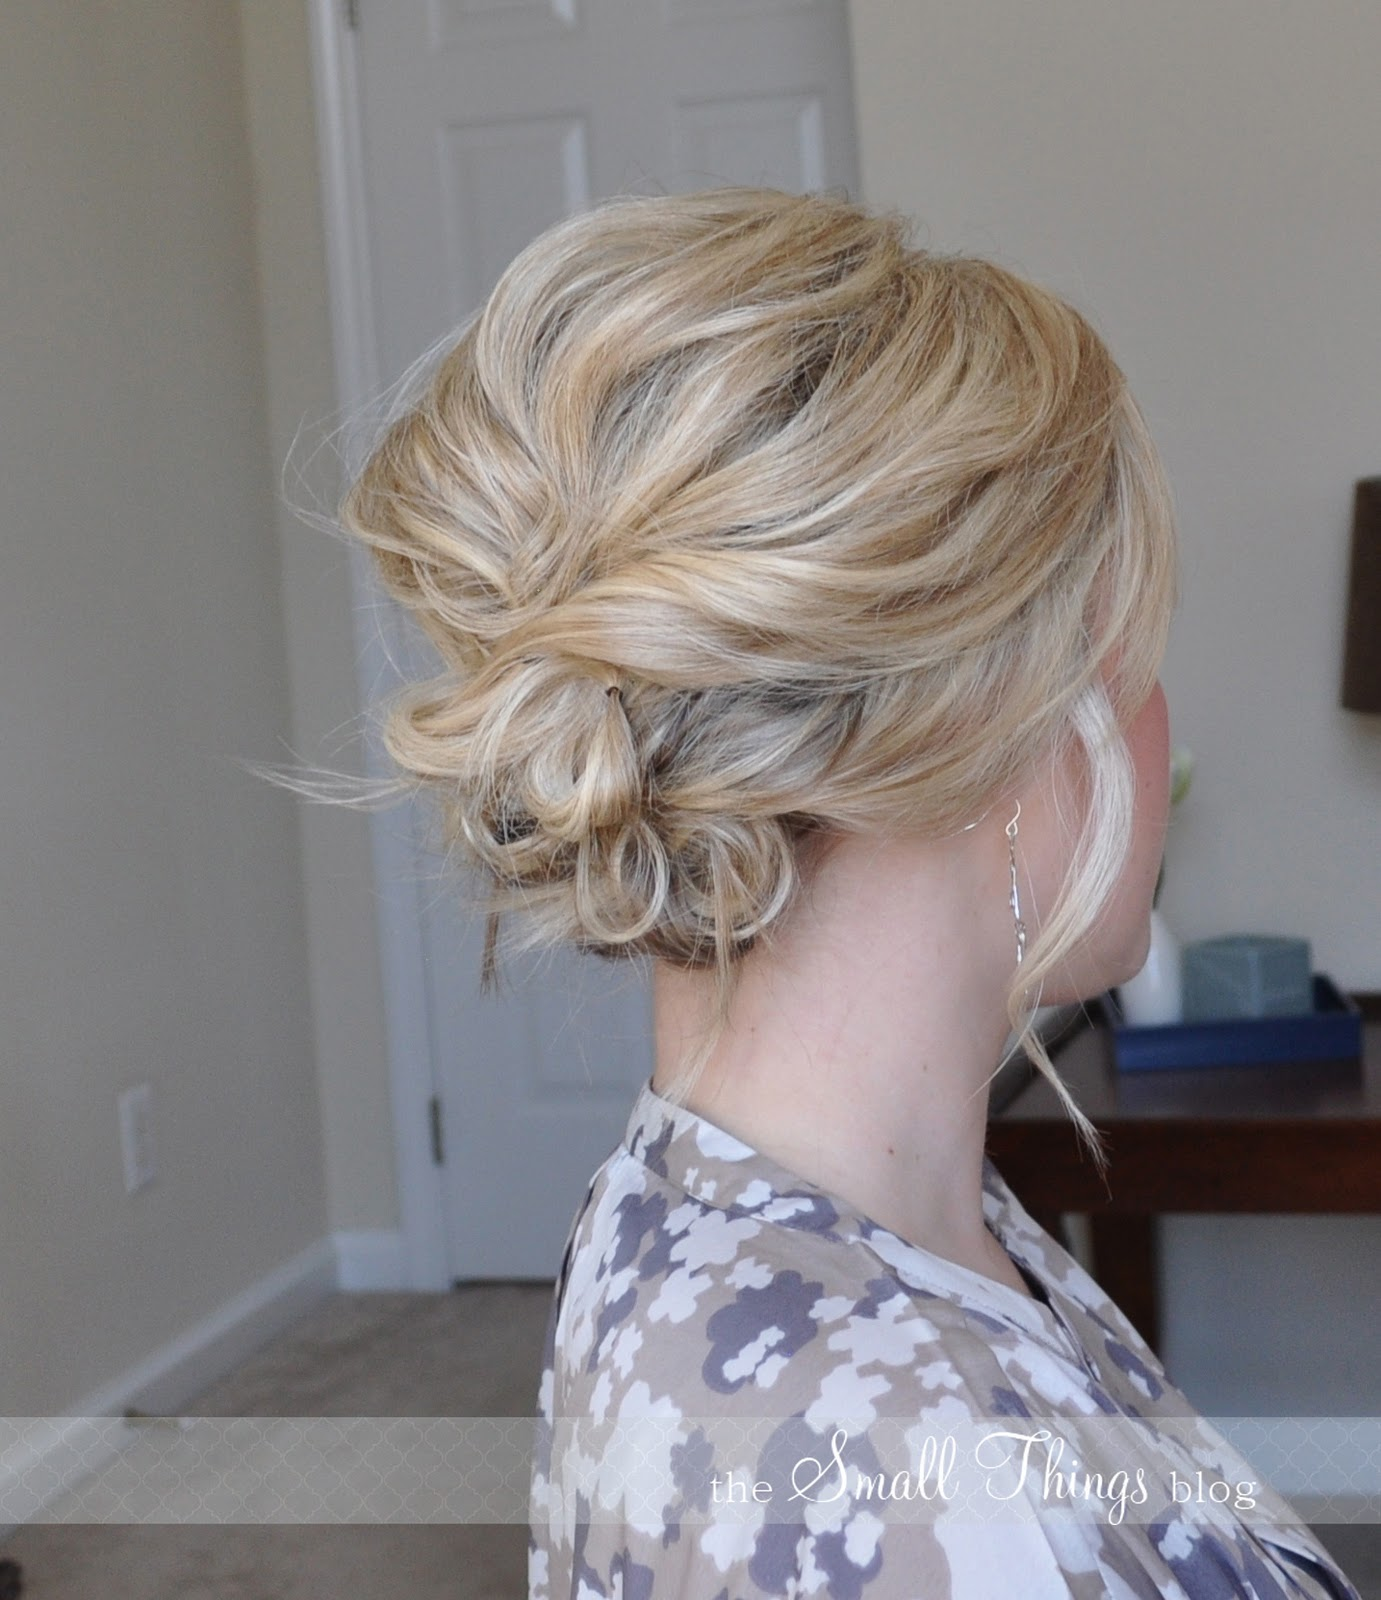 Wedding Hairstyles For Medium Thin Hair: The Small Things Blog